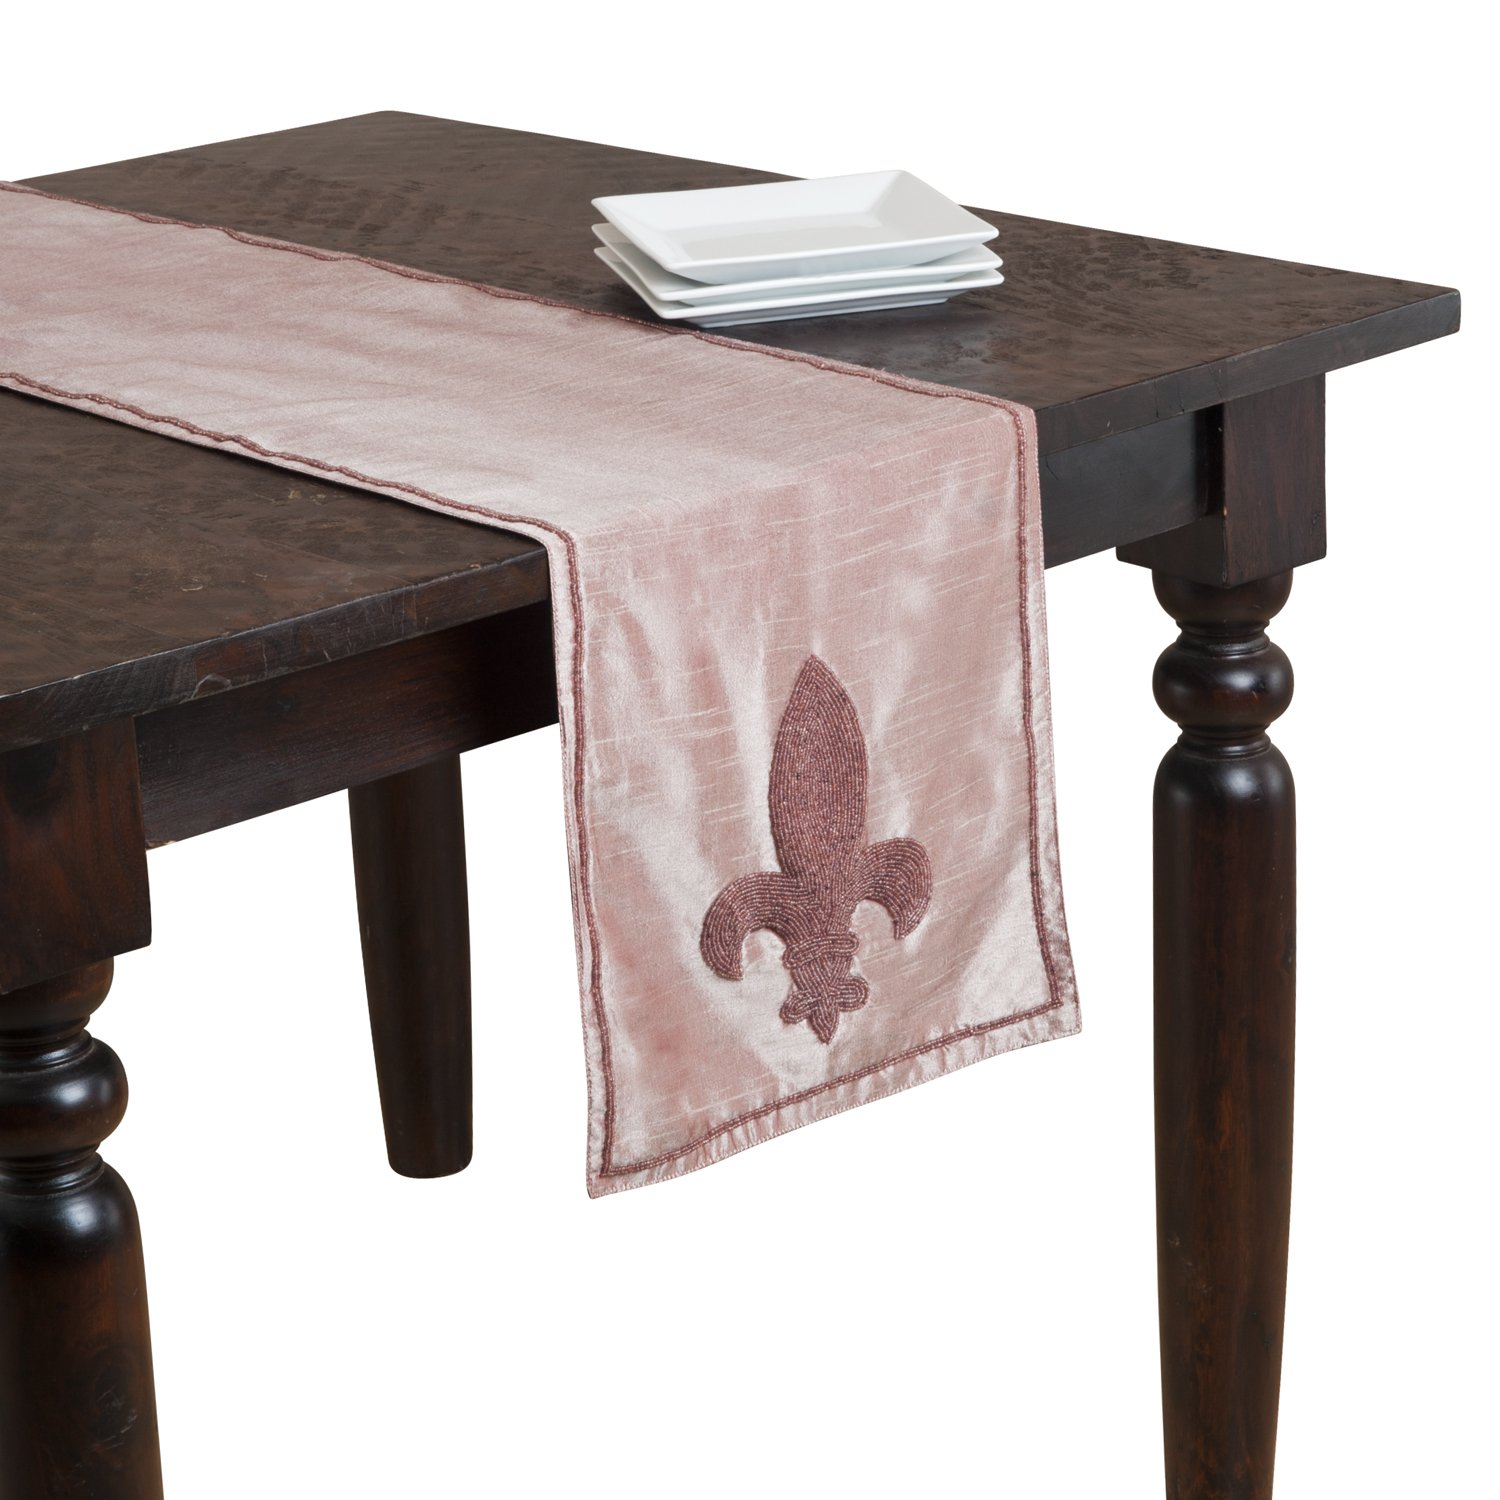 SARO LIFESTYLE H713 Orleans Oblong Table Runner 13 by 72-Inch Red